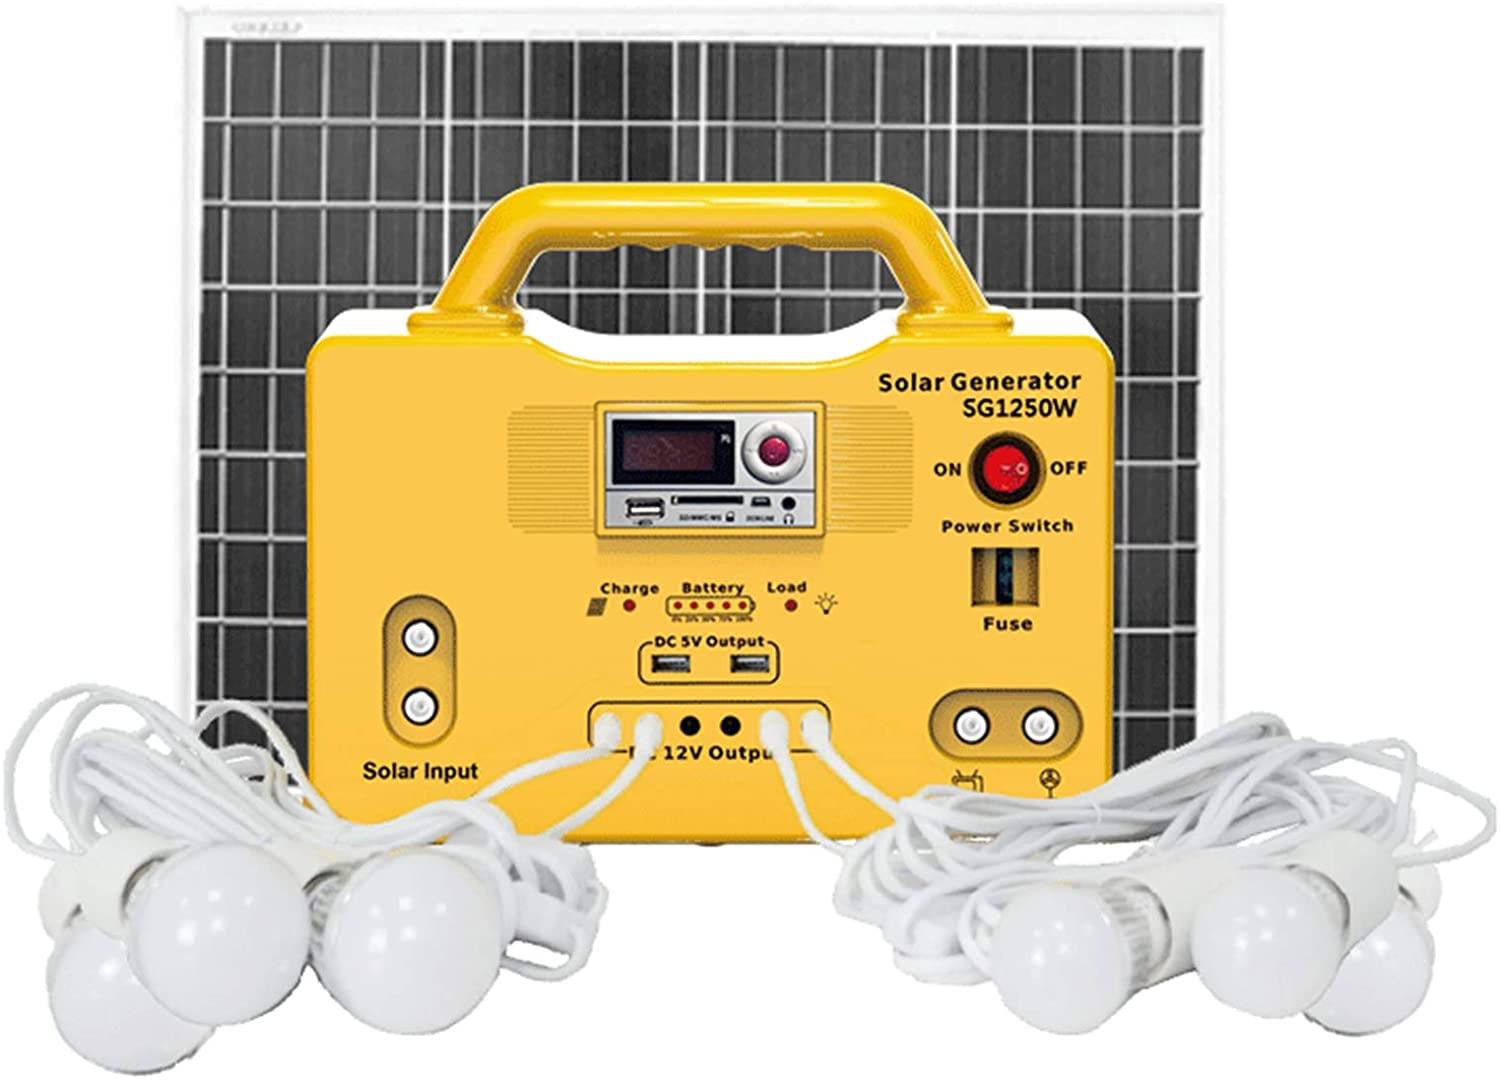 HPH 50W Portable Solar Generator Kit,Family Emergency Backup Power Supply Solar Power Station Radio MP3 with Solar Panel 6 LED Lights for Camping Power Failure Recharge Illumination